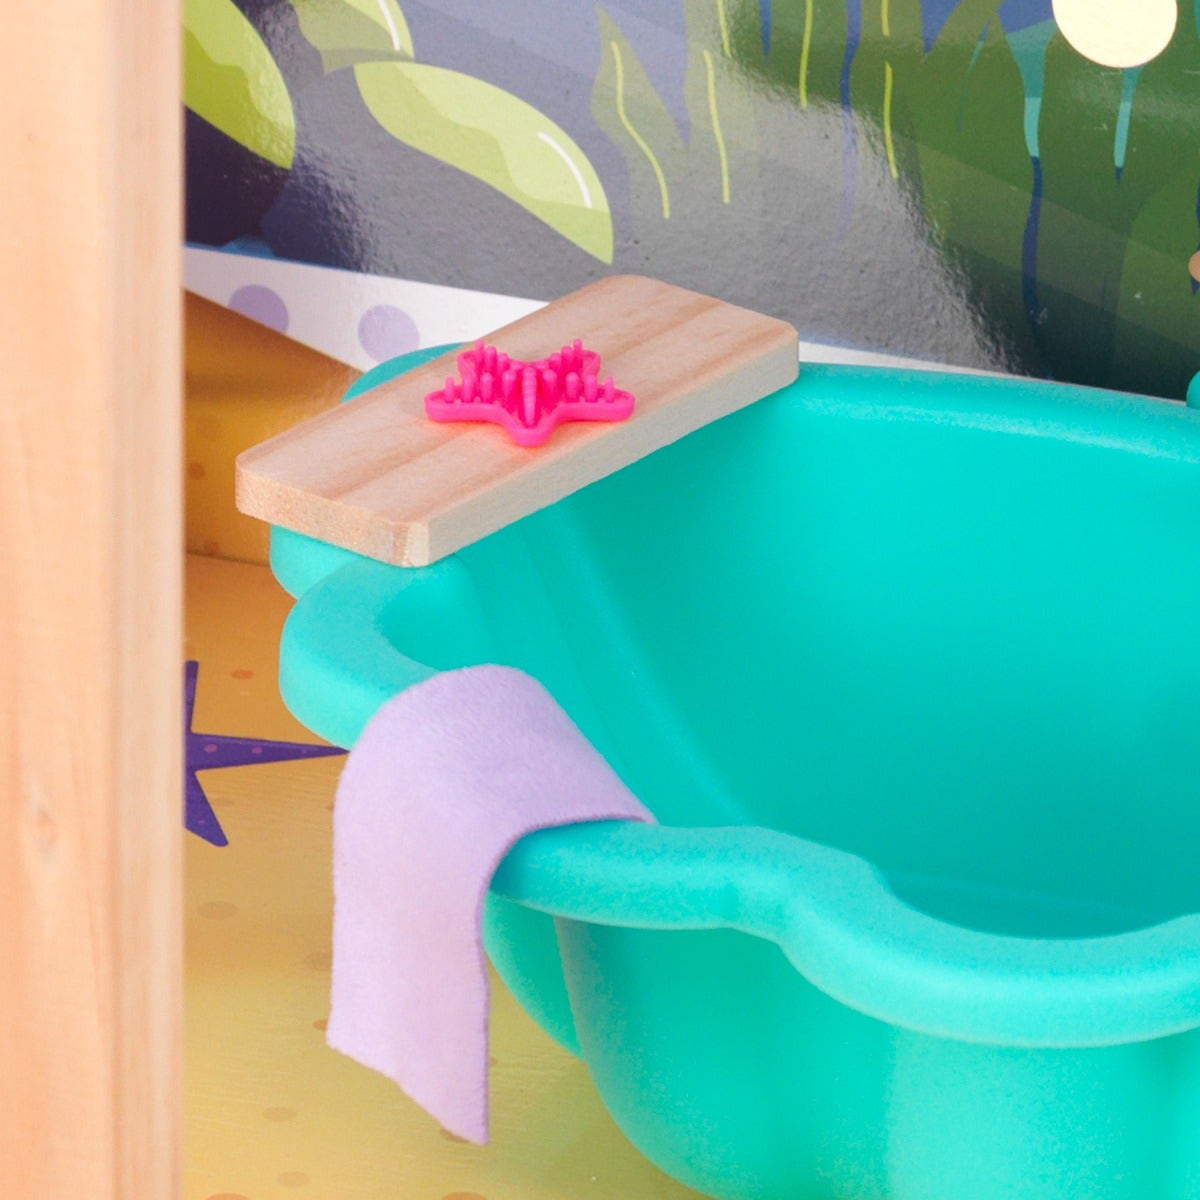 Sea-faring Accessories: Adorable wooden tub tray holds a starfish-shaped comb and fabric towel for realistic interactive play.